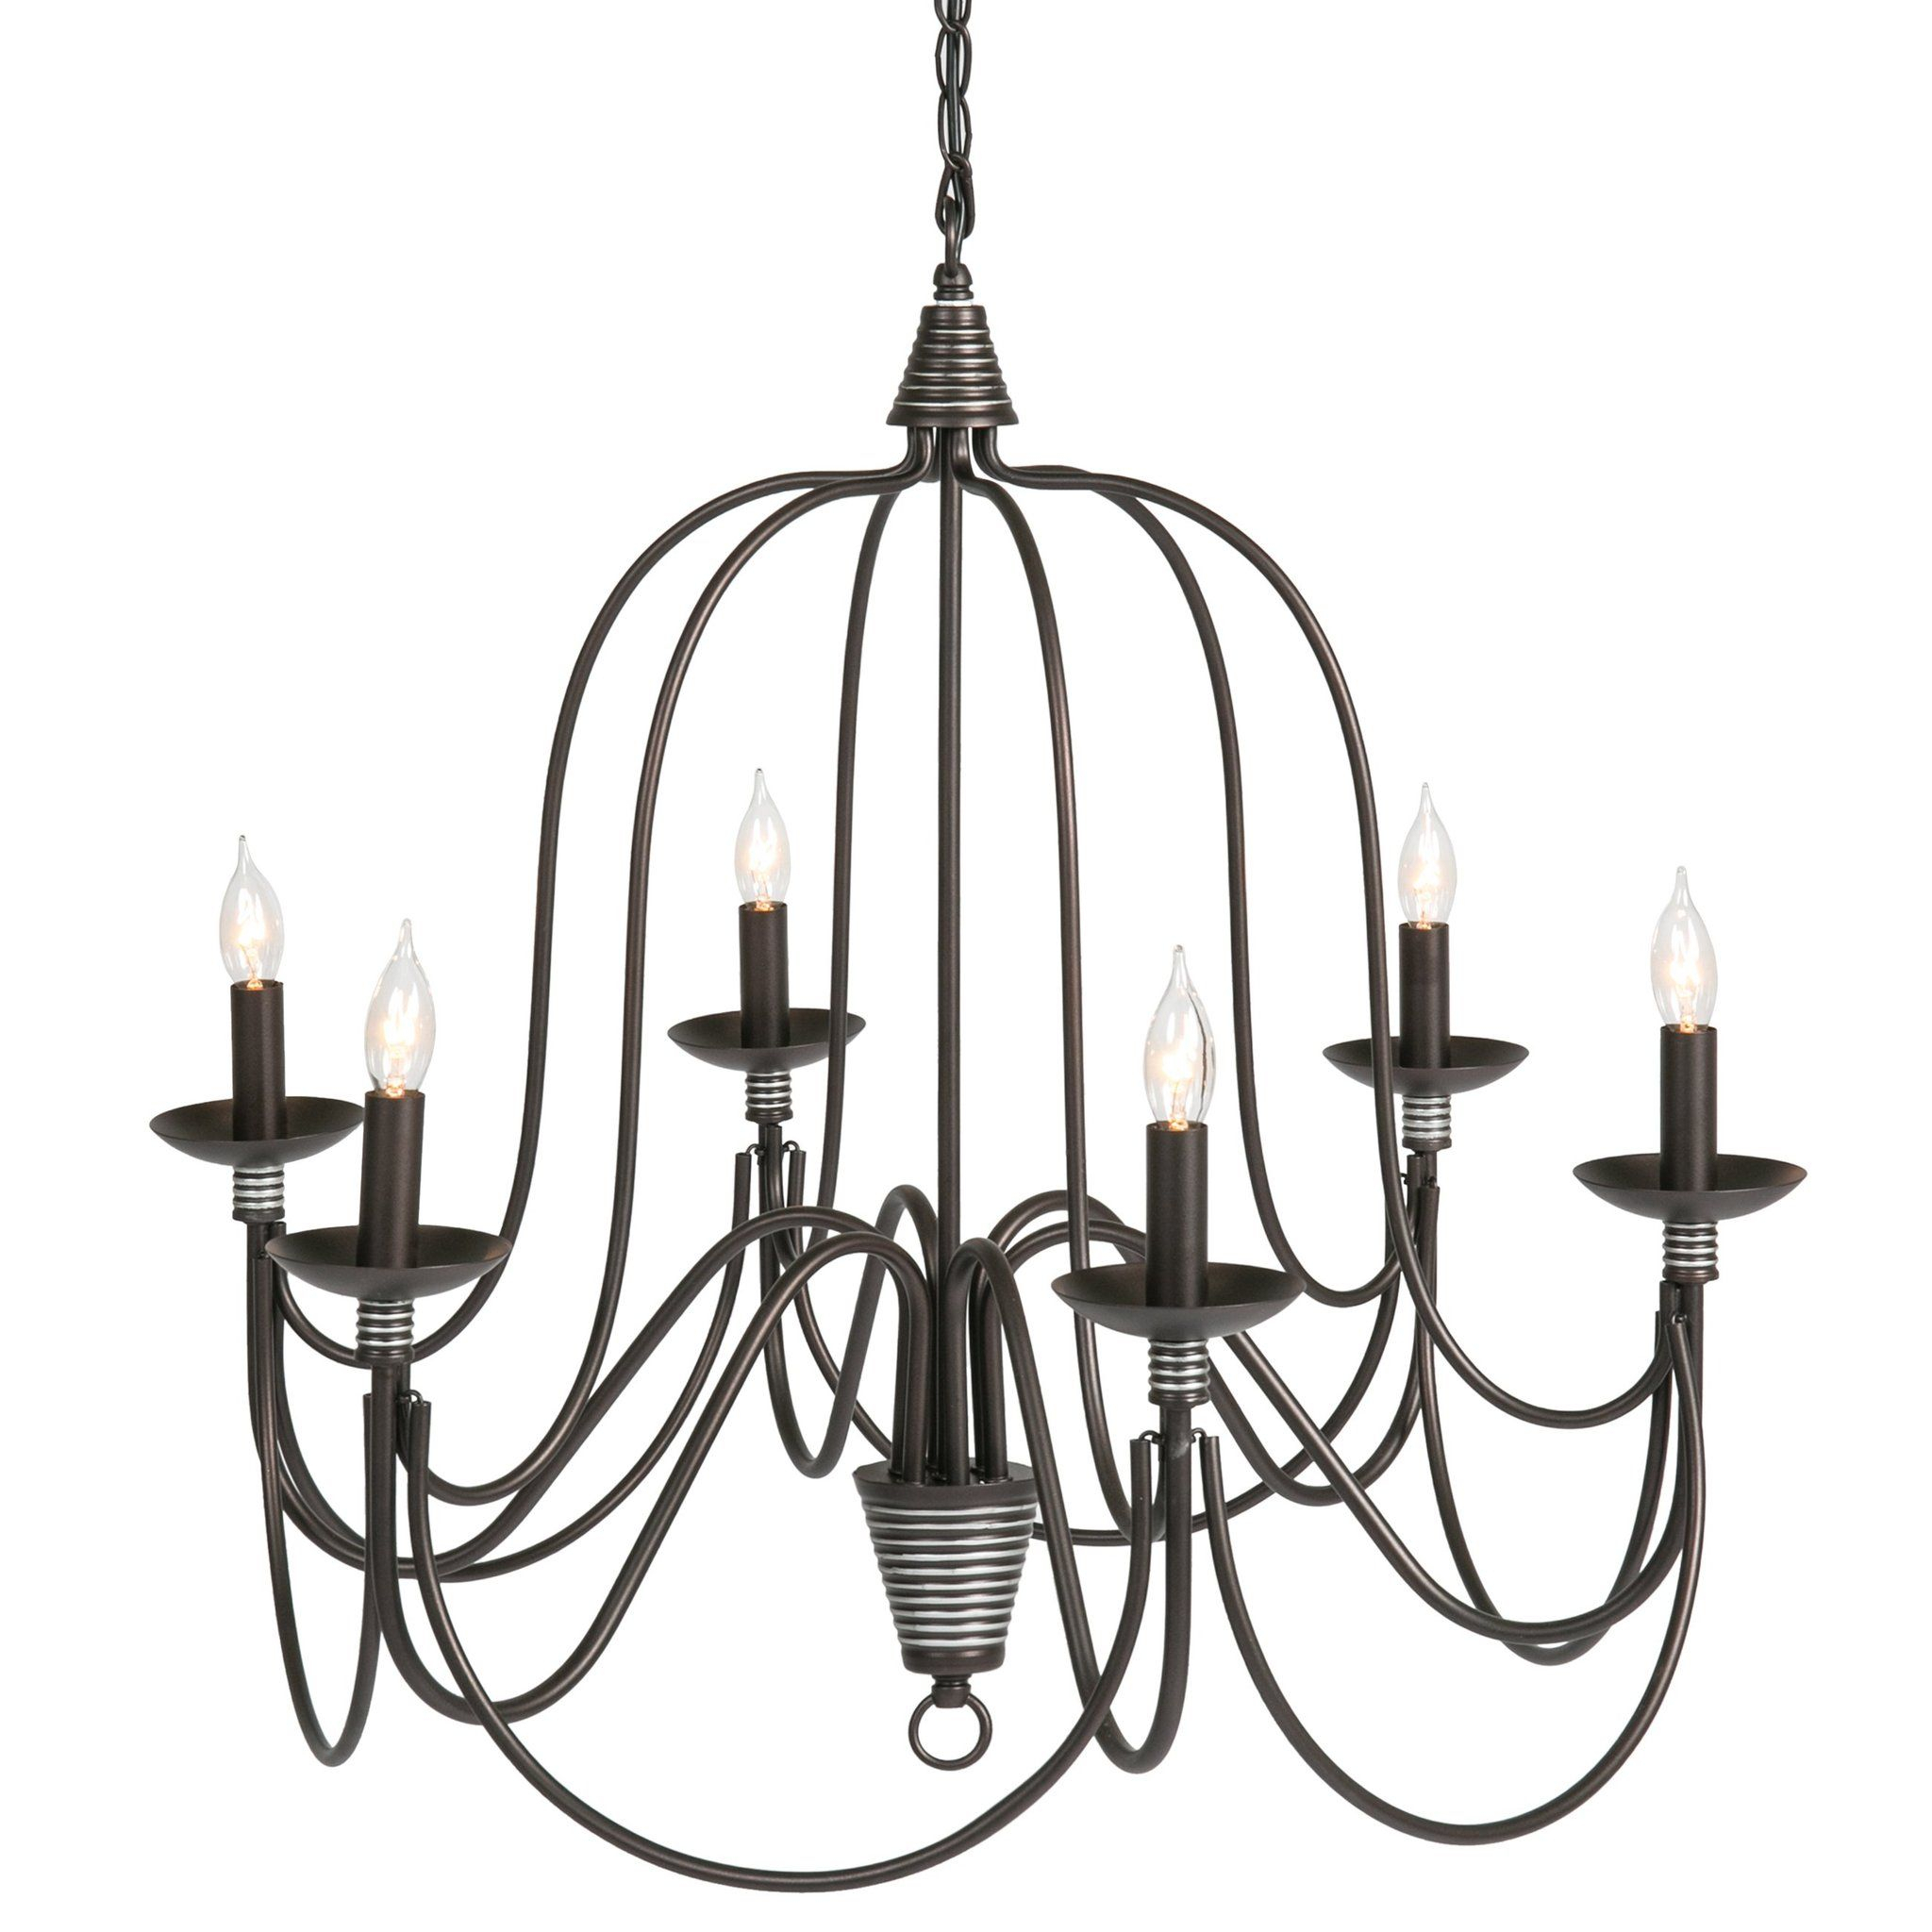 25In 6 Light Candle Chandelier Lighting Fixture W/ 41In Regarding Perseus 6 Light Candle Style Chandeliers (Gallery 13 of 30)